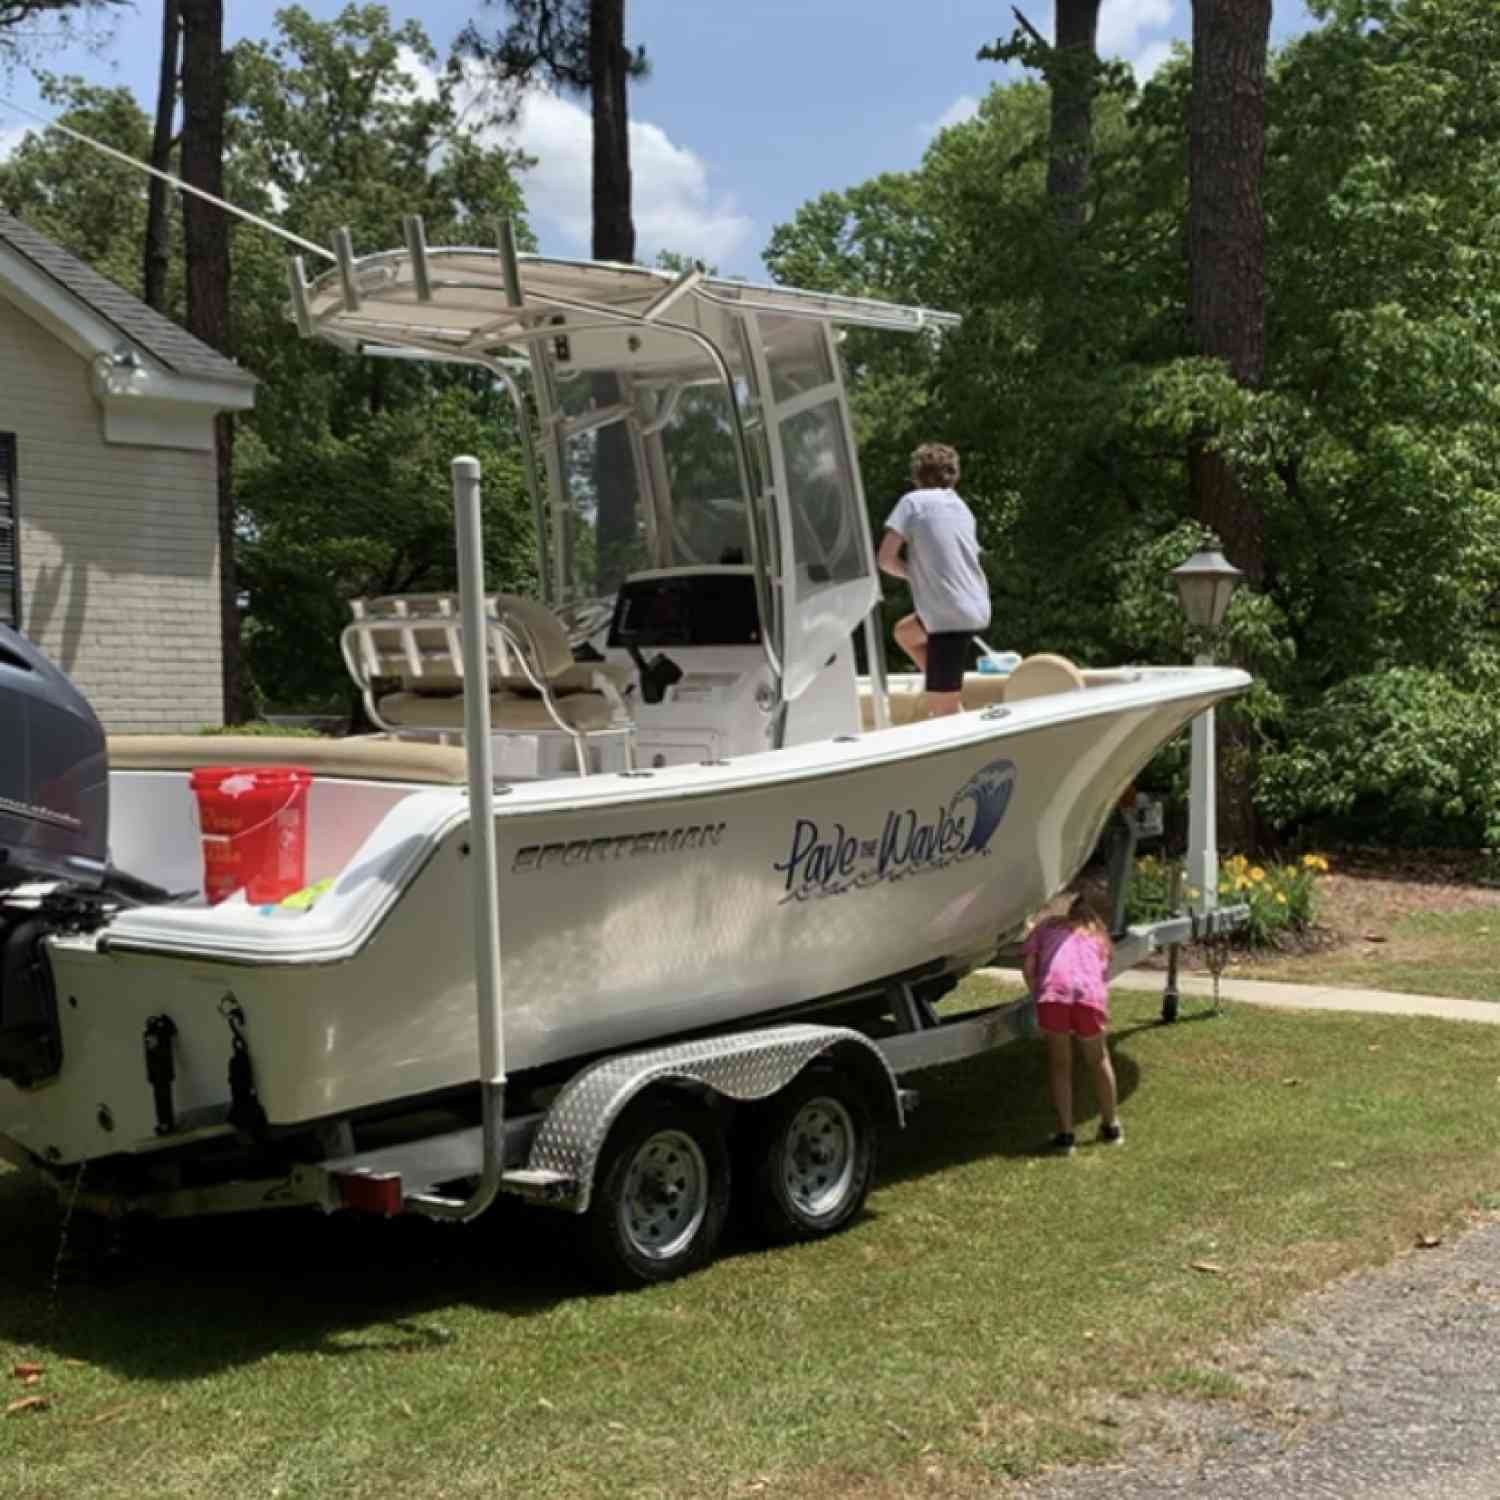 Title: Cleaning her up - On board their Sportsman Heritage 211 Center Console - Location: Snow Hill, NC. Participating in the Photo Contest #SportsmanJune2020